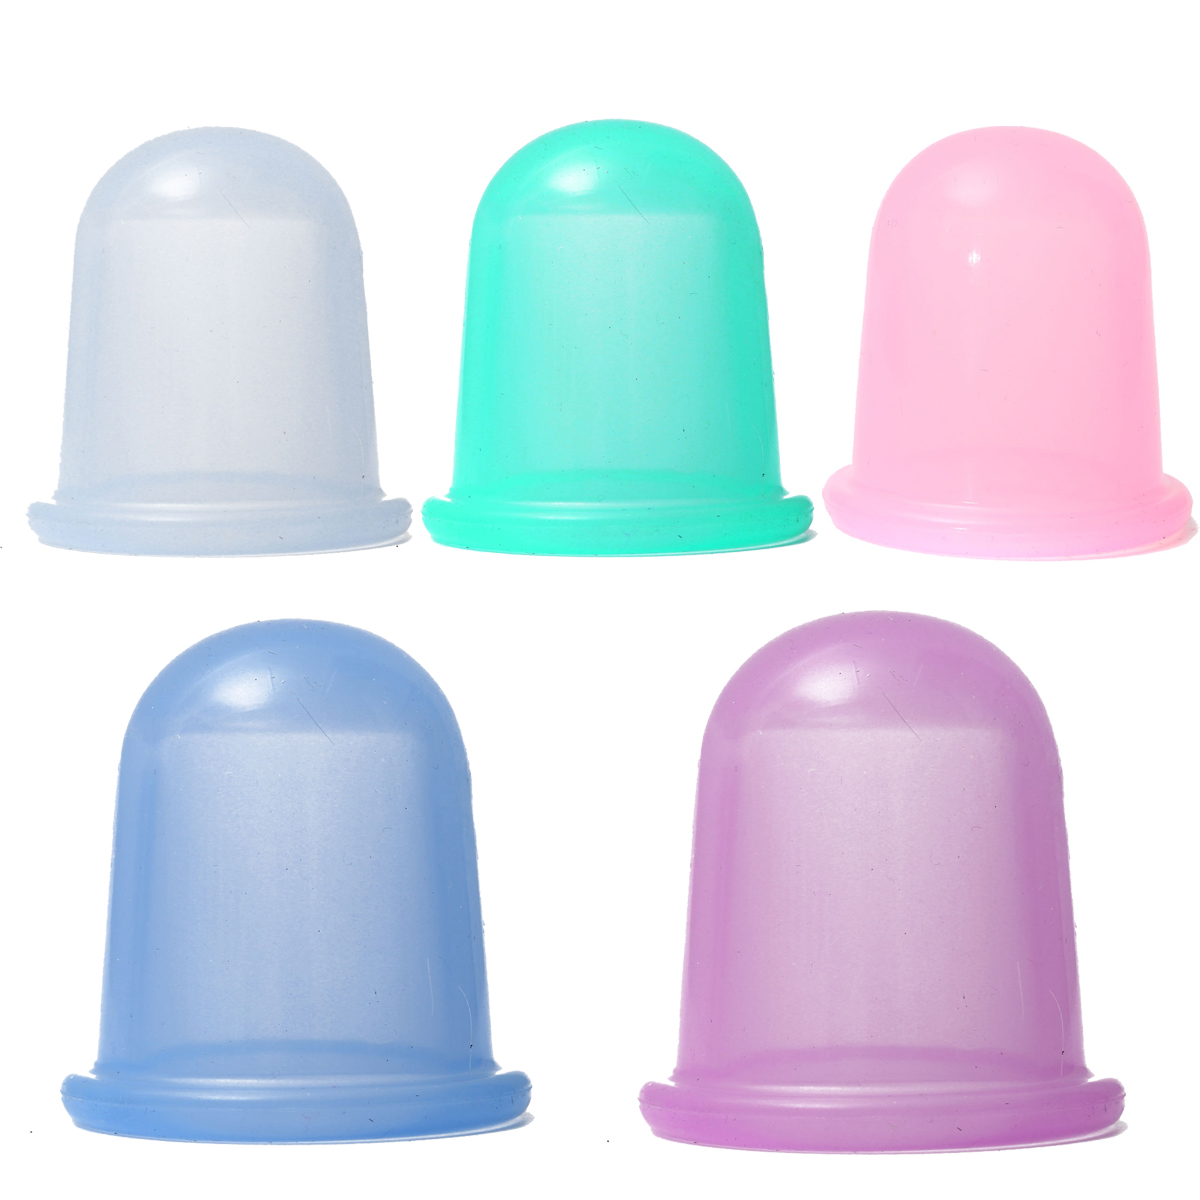 On Clearance Cupping Therapy Vacuum Silicone Cupping Cups Cupping for Cellulite Massage Therapists